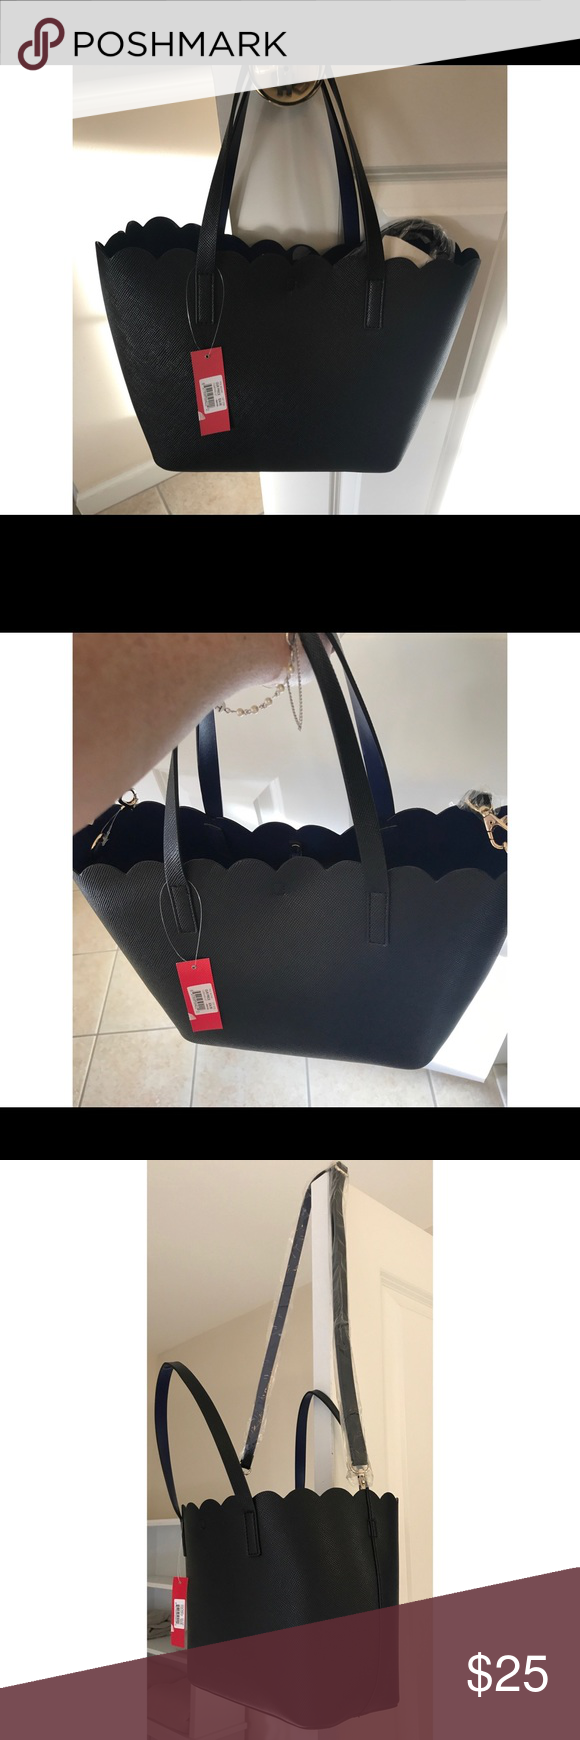 Kelly Katie Purse Bnwt And Black Handbag With A Cobalt Blue Interior Handles As Well Shoulder Strap Toggle Closure